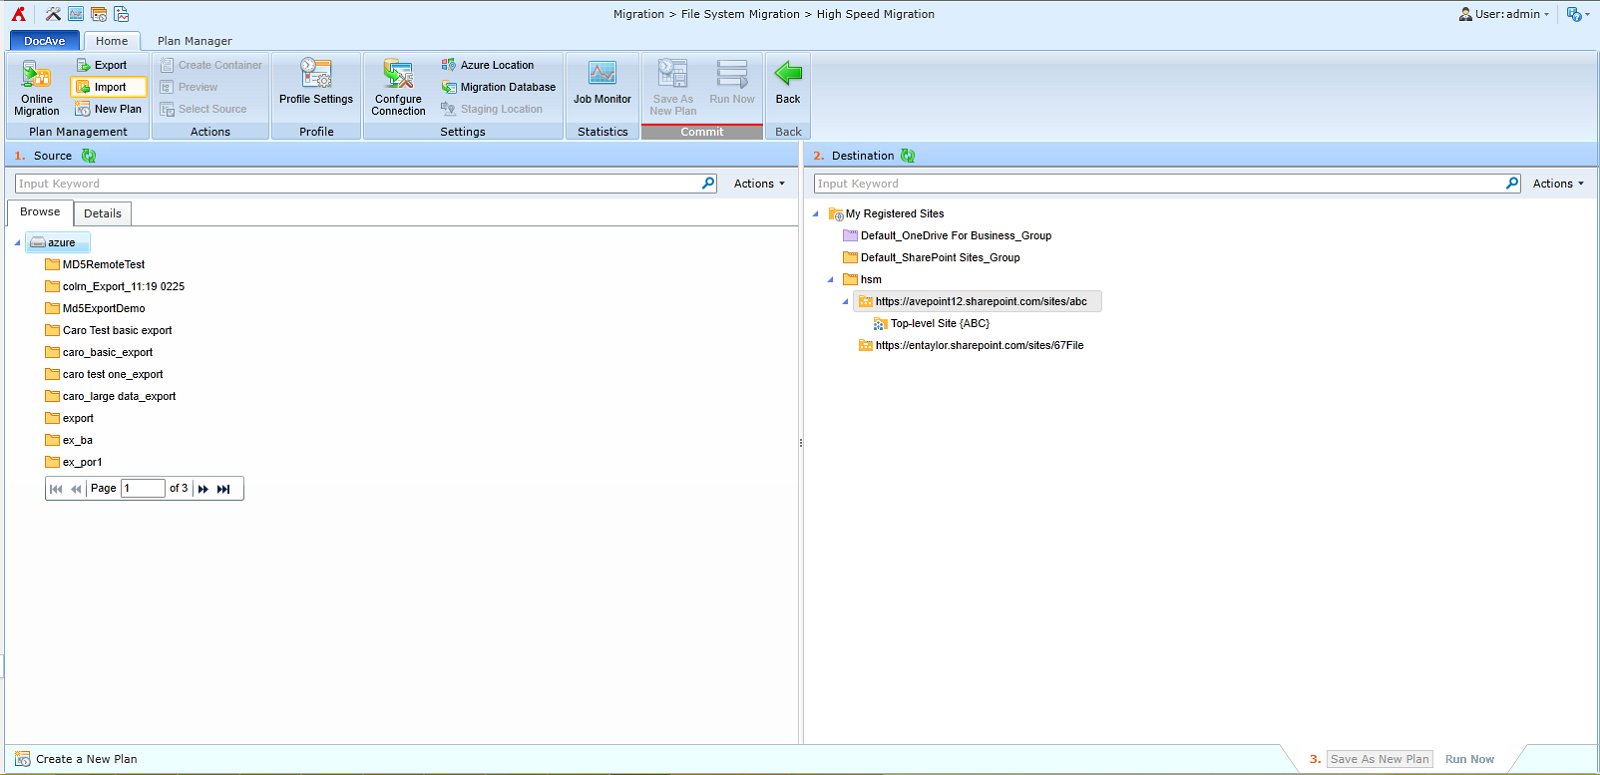 Office 365 Migration, Office 365 Migration Tools | AvePoint